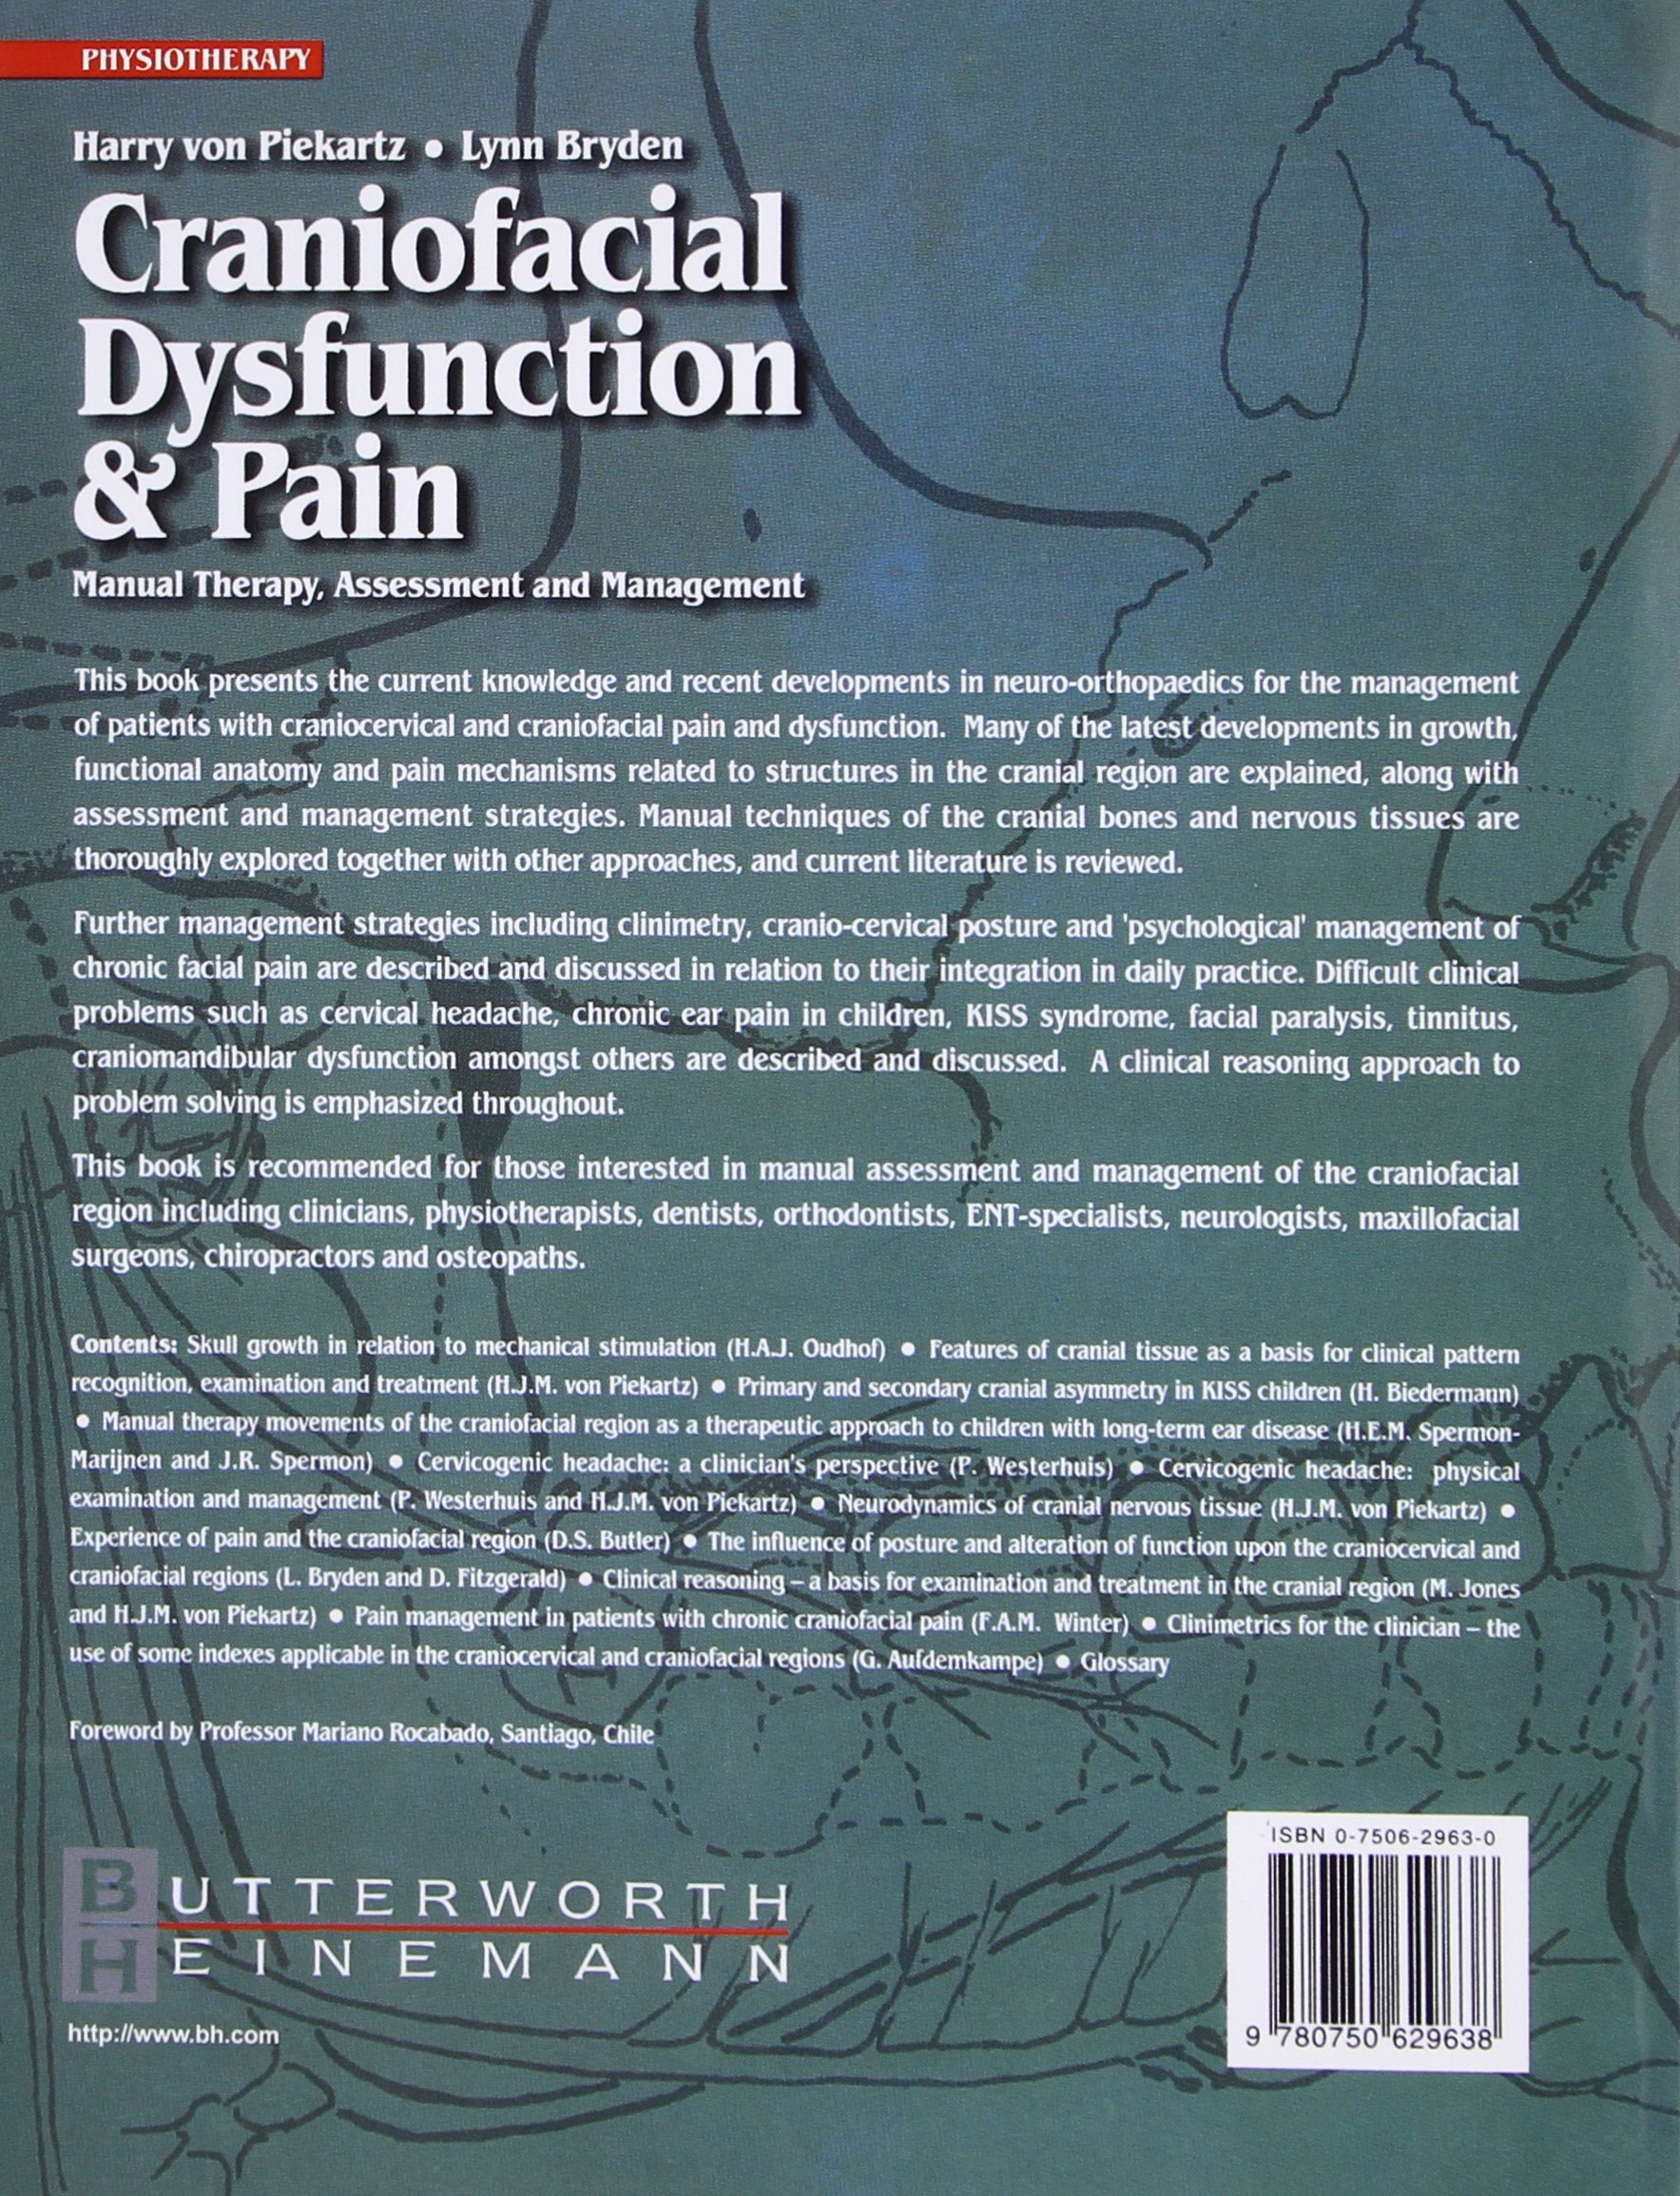 Craniofacial Dysfunction and Pain: Manual Therapy, Assessment and Management